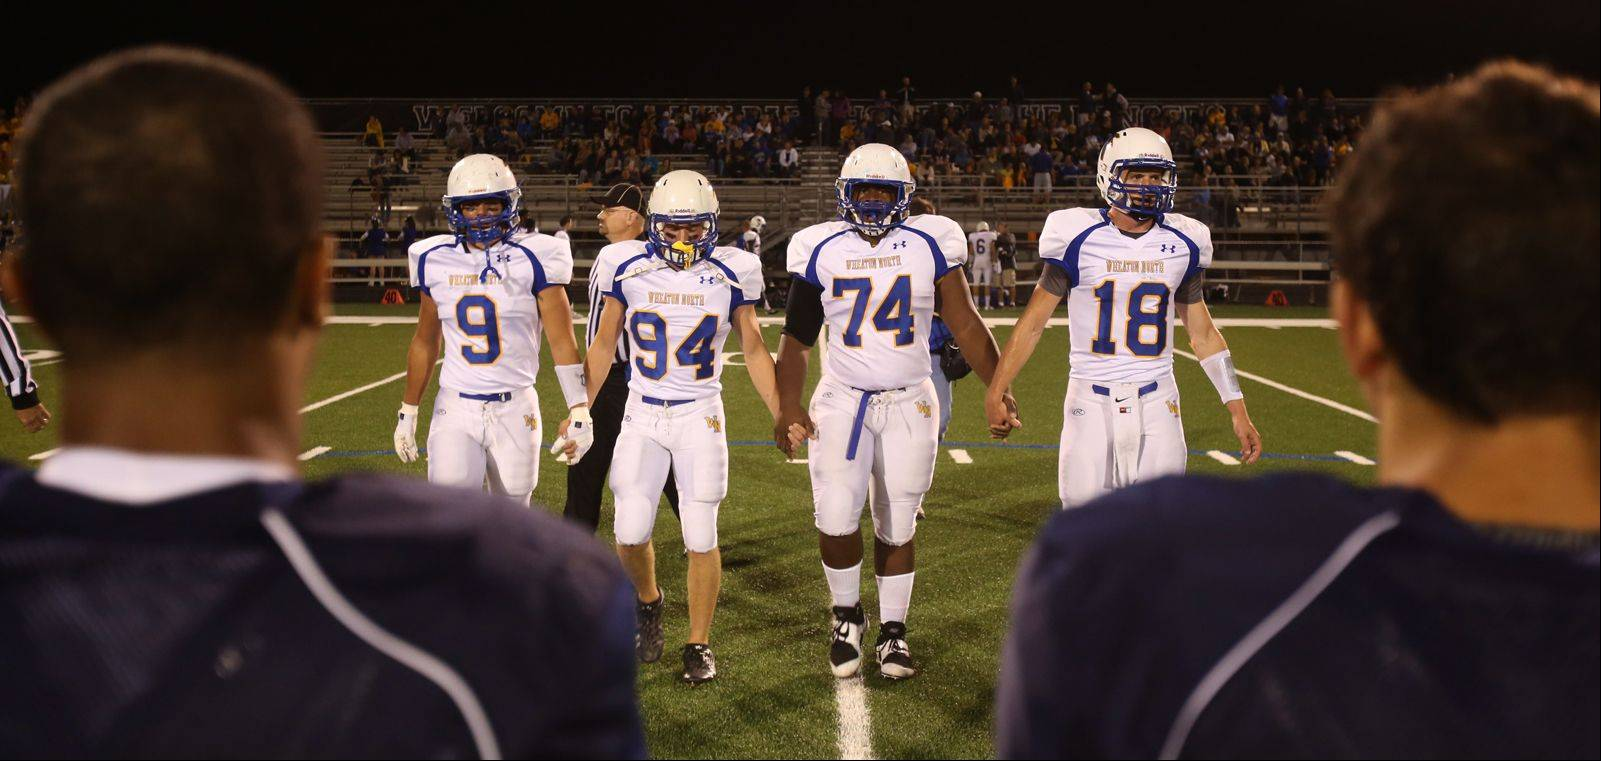 Week-5- Photos from the Wheaton North at Lake Park football game on Friday, September 27.